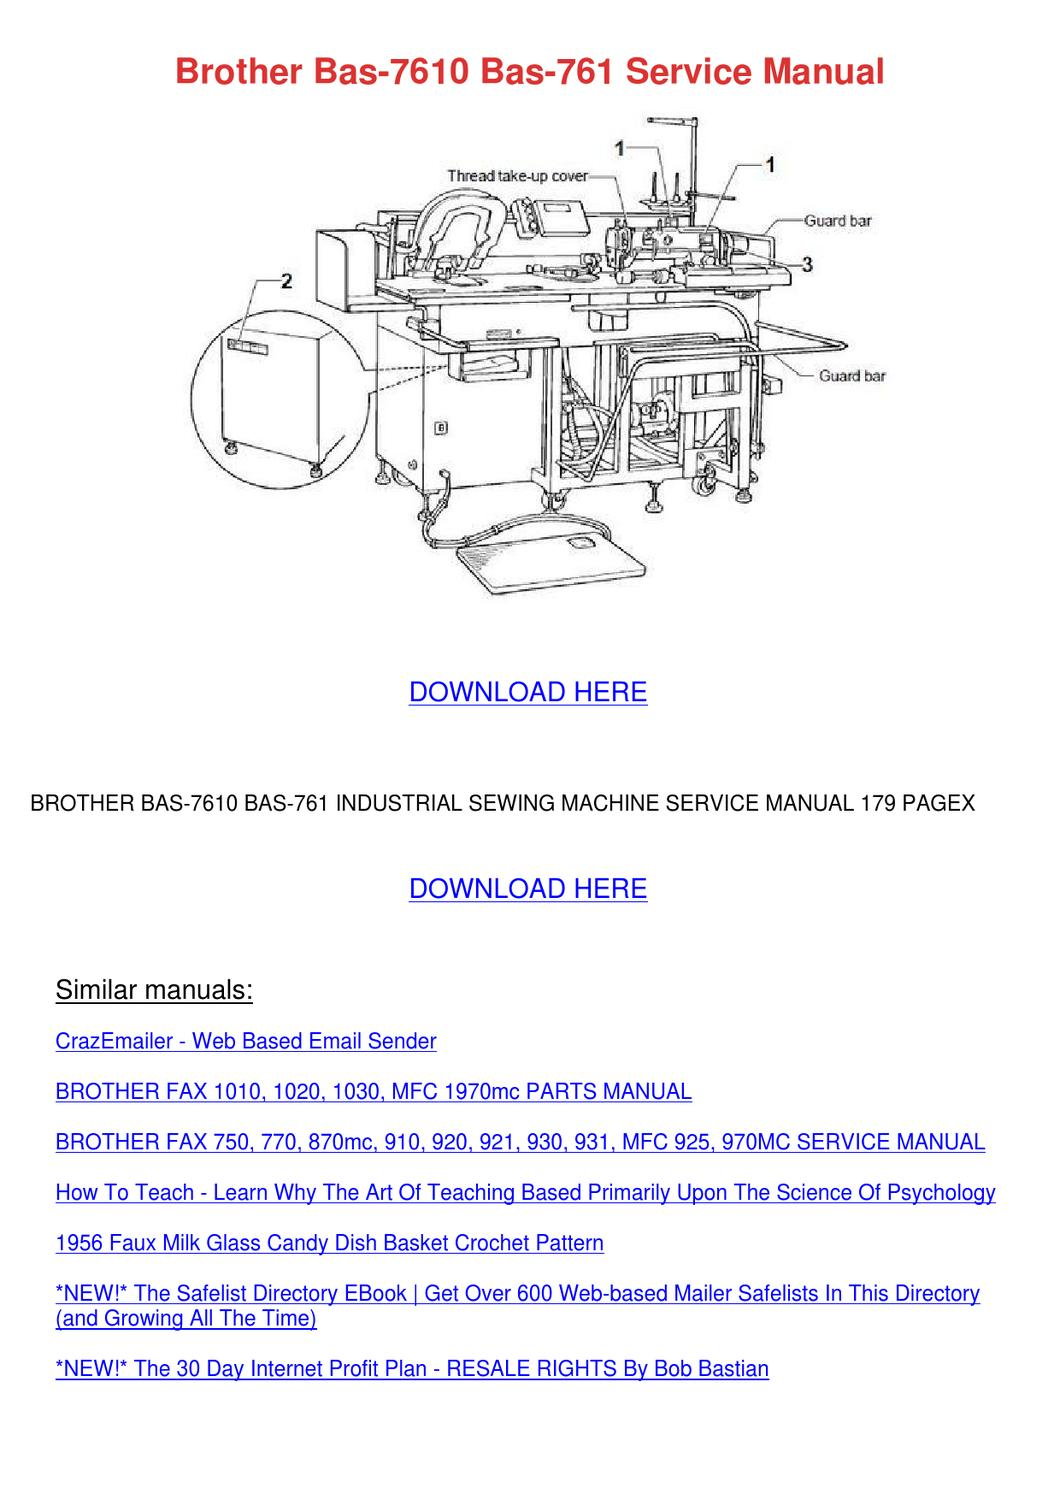 Brother bas 7610 bas 761 service manual by josefina hotalen issuu fandeluxe Images